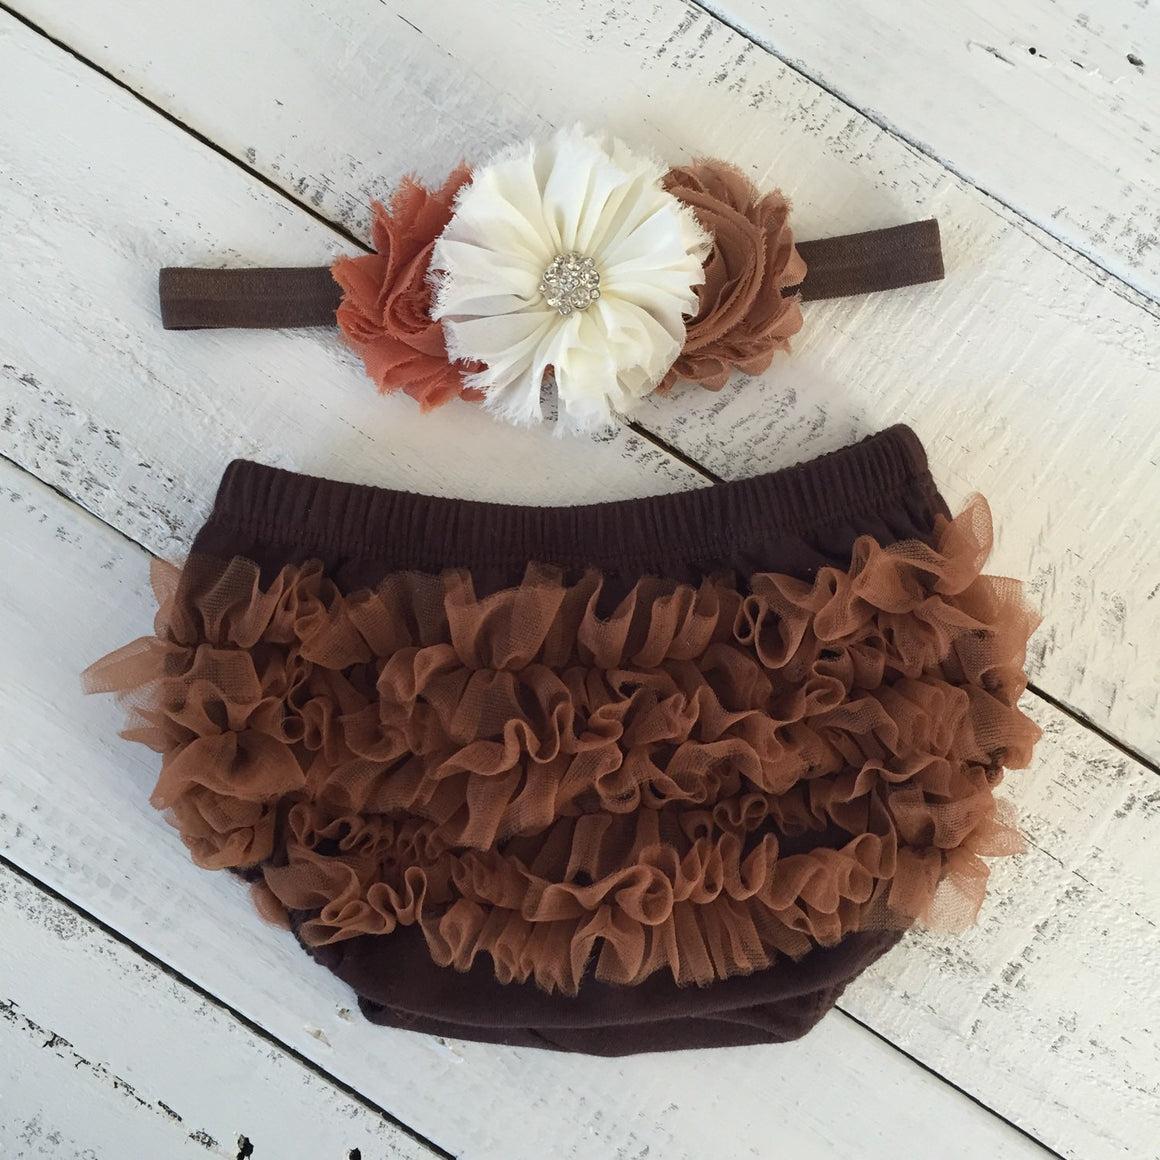 Brown ruffle bloomers diaper cover  - Leopard print ruffle bottom leg warmers - Fall headband ivory rhinestone - baby girl, toddler infant - HoneyLoveBoutique